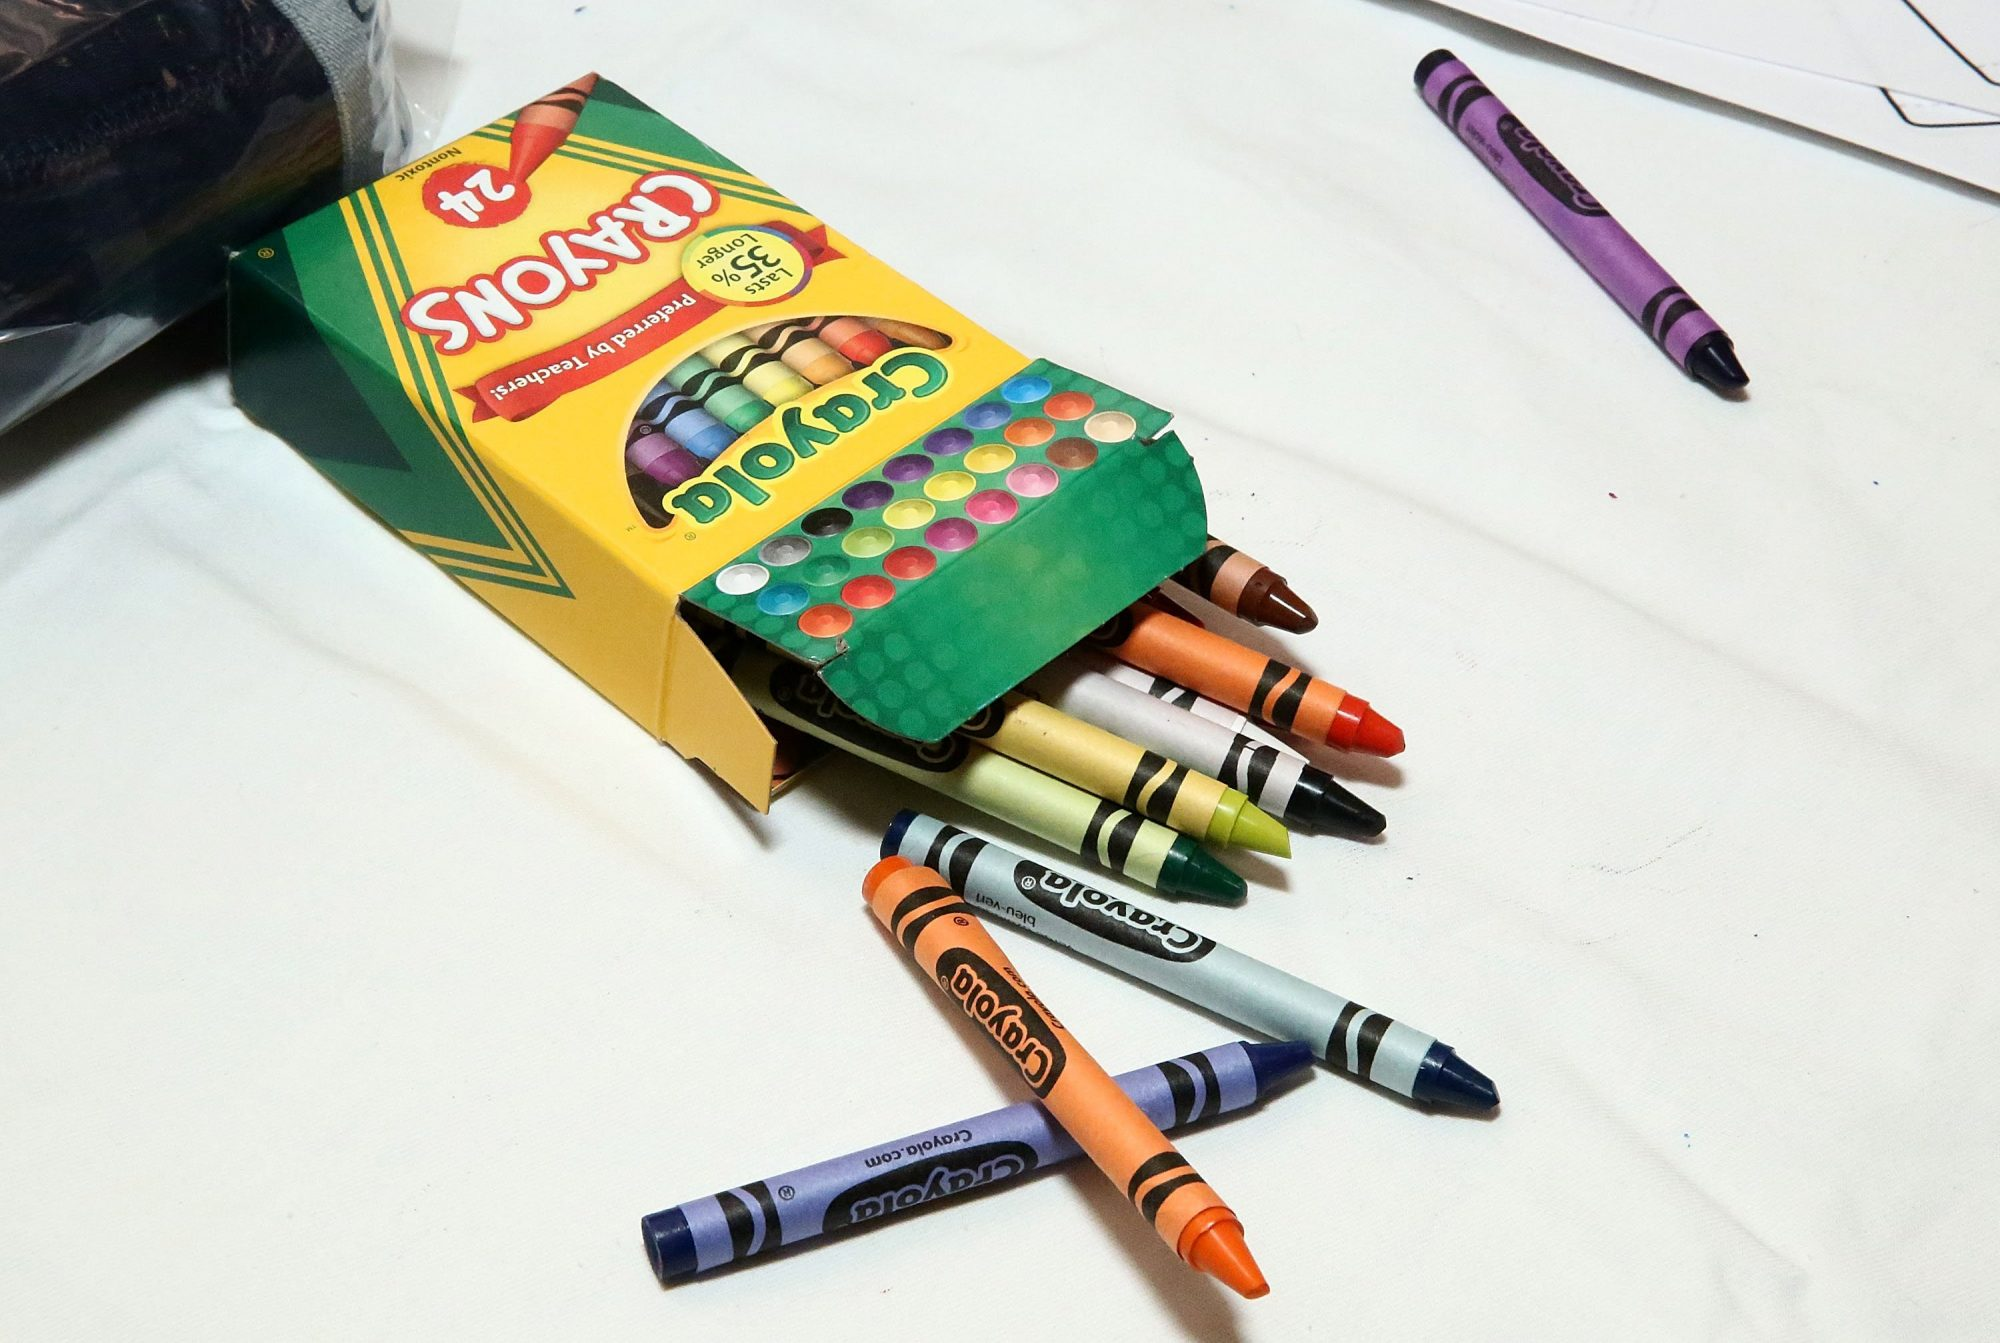 Crayola Is Retiring a Color from Its 24-crayon Box for the First Time in 100 Years